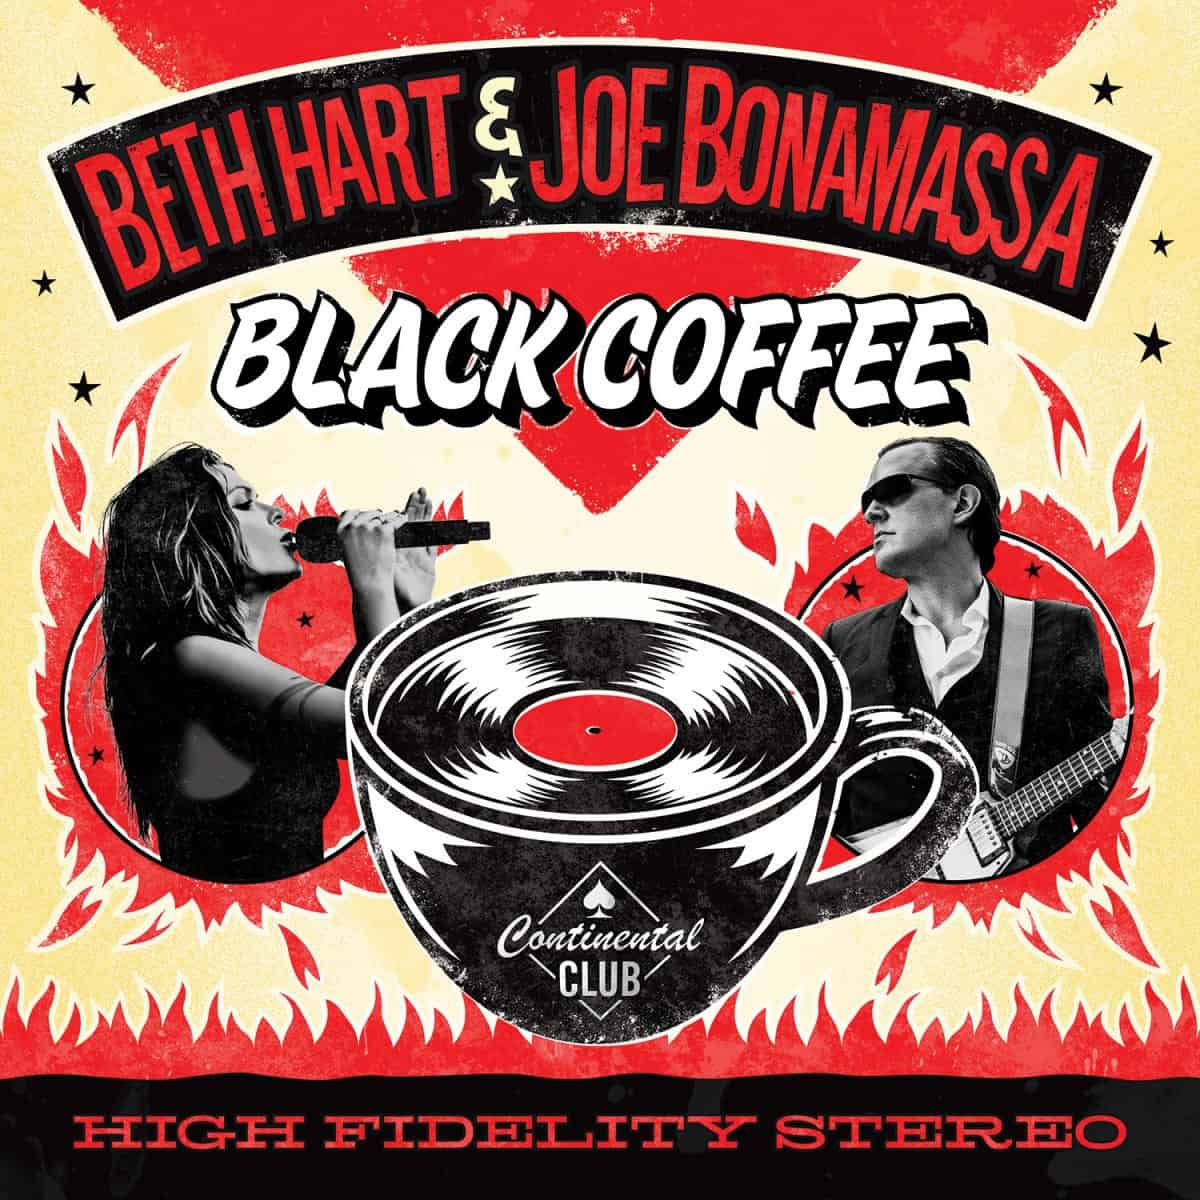 Beth Hart and Joe Bonamassa - Black Coffee